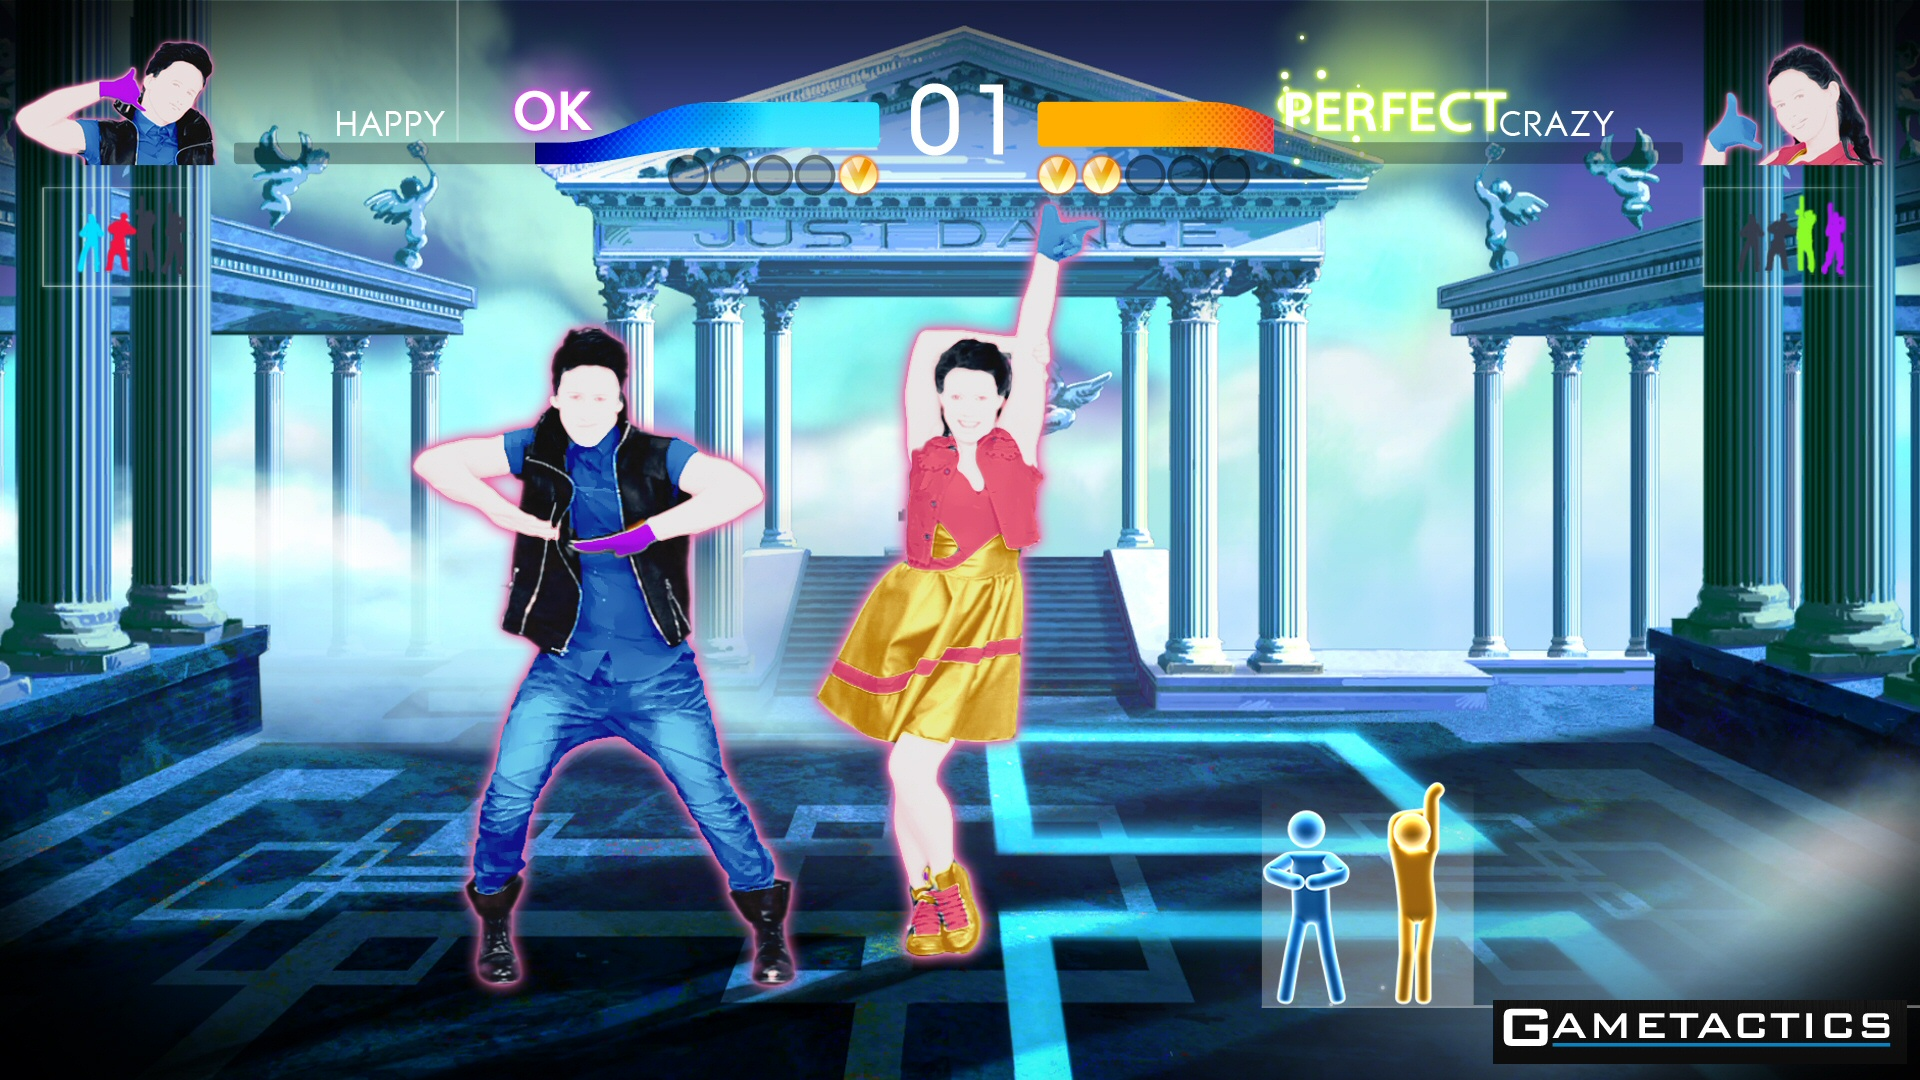 Just Dance Game For Xbox 360 : Just dance 4 launch trailer and screenshots u2013 released today in